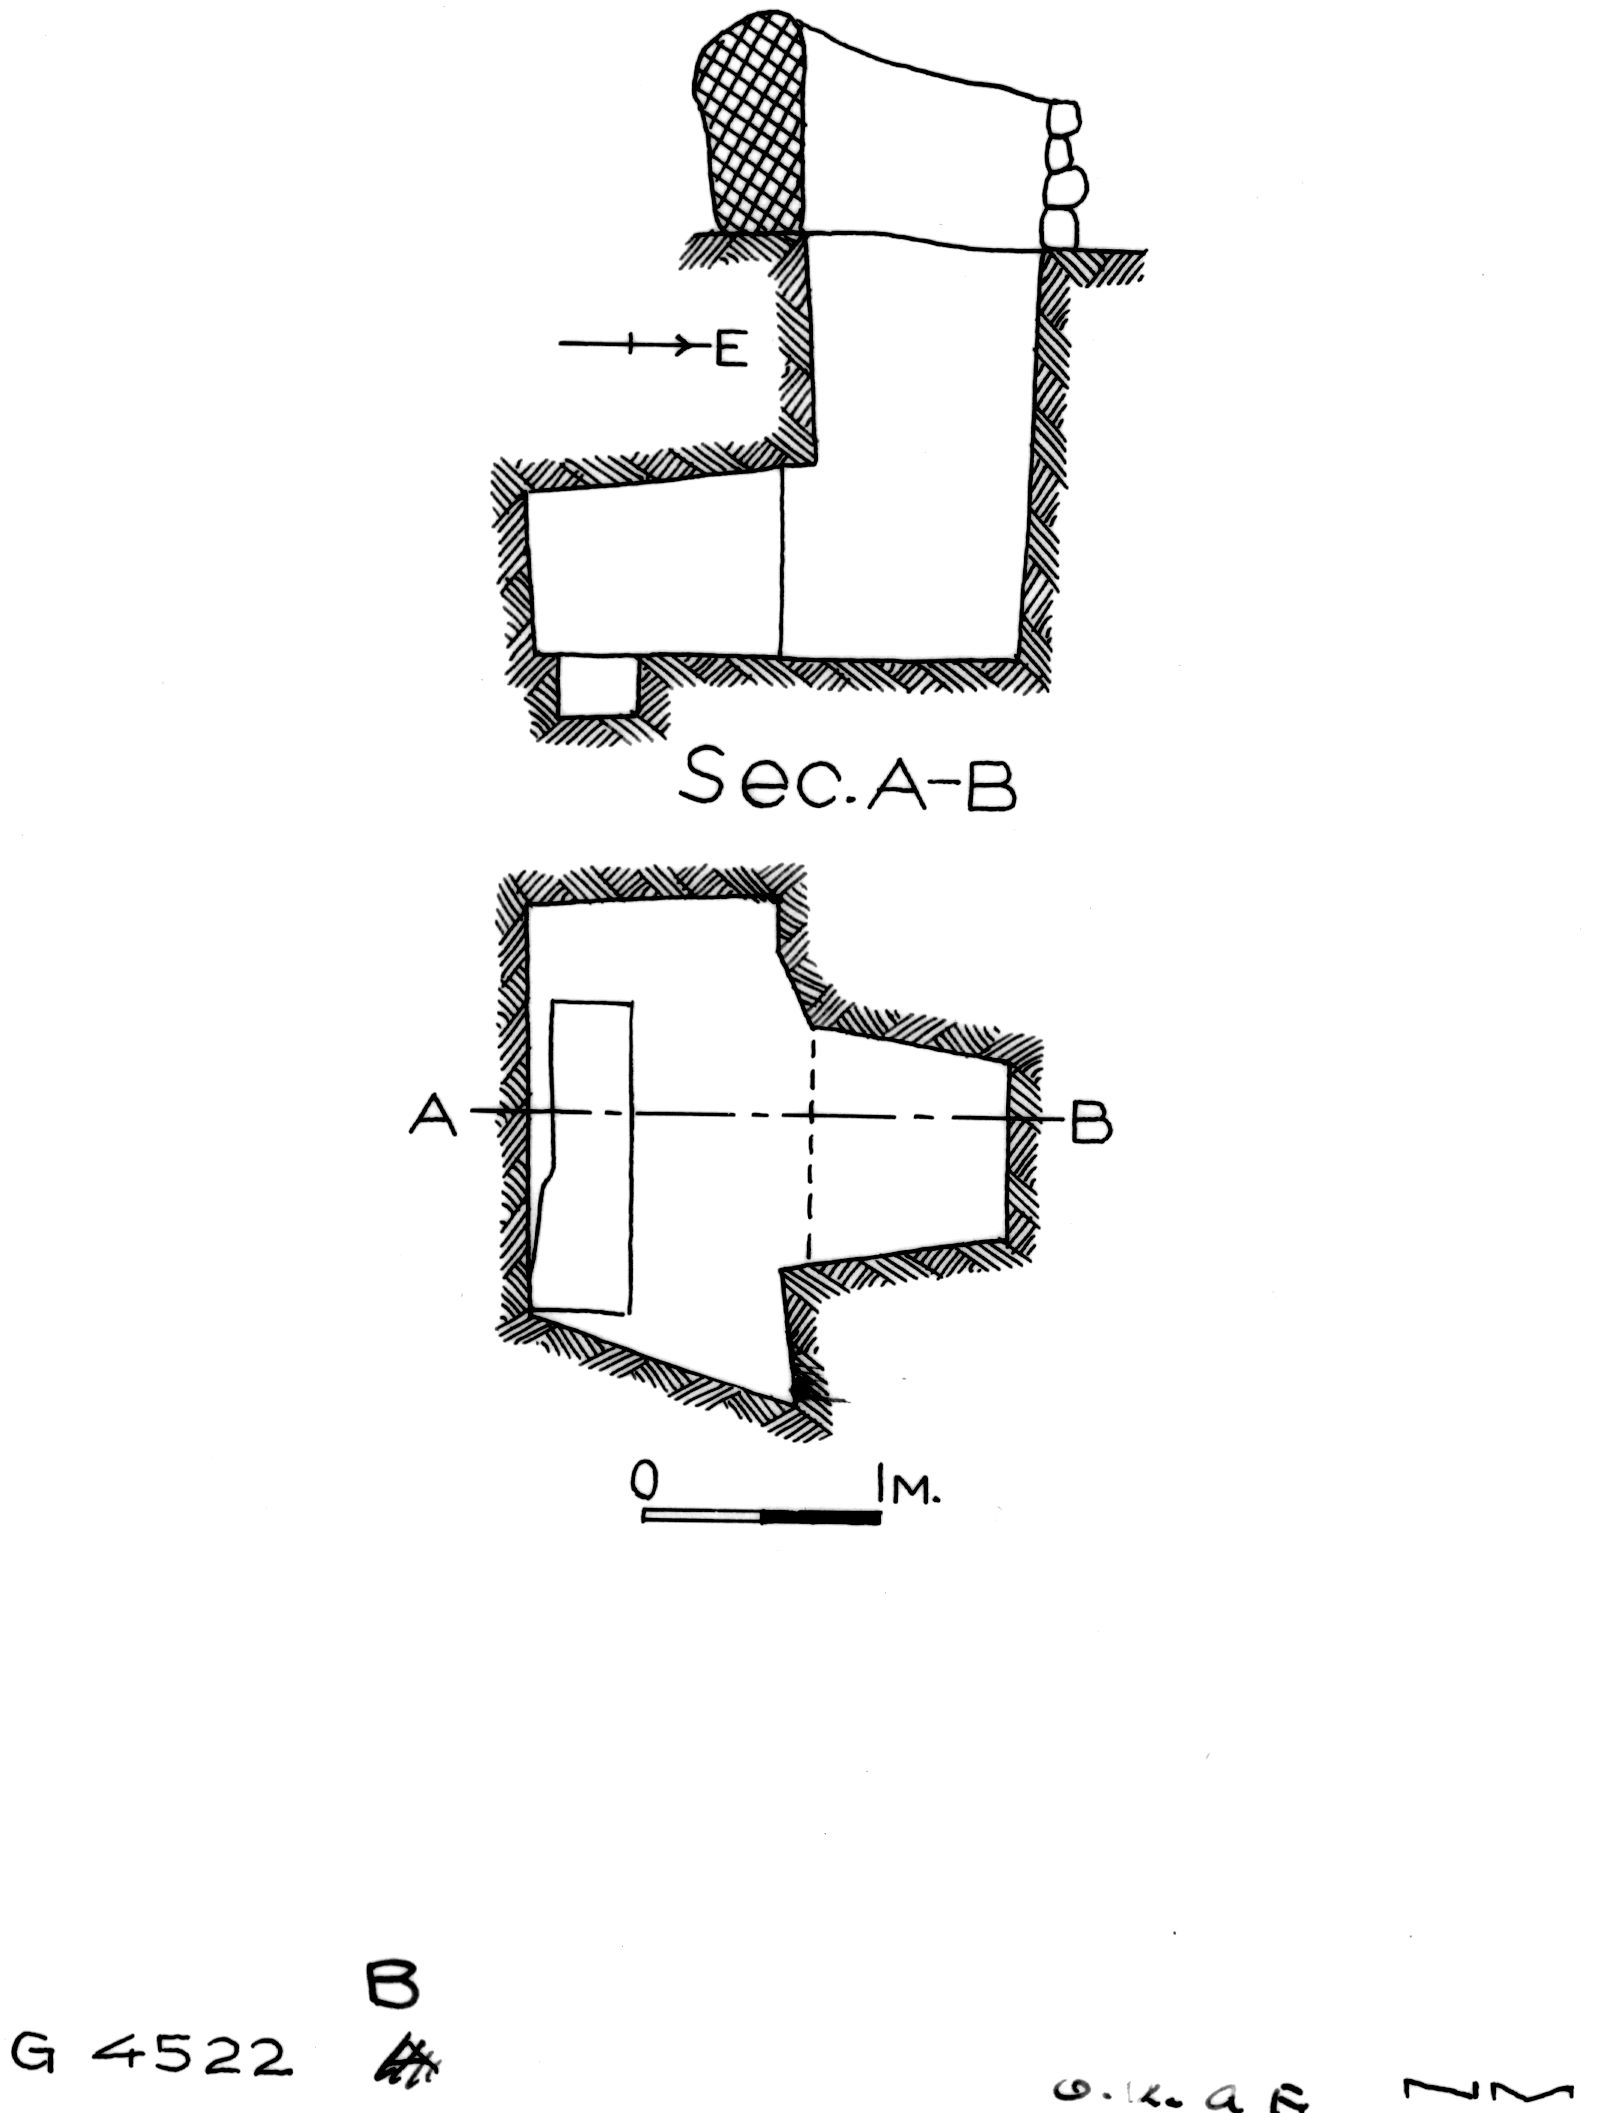 Maps and plans: G 4522, Shaft B